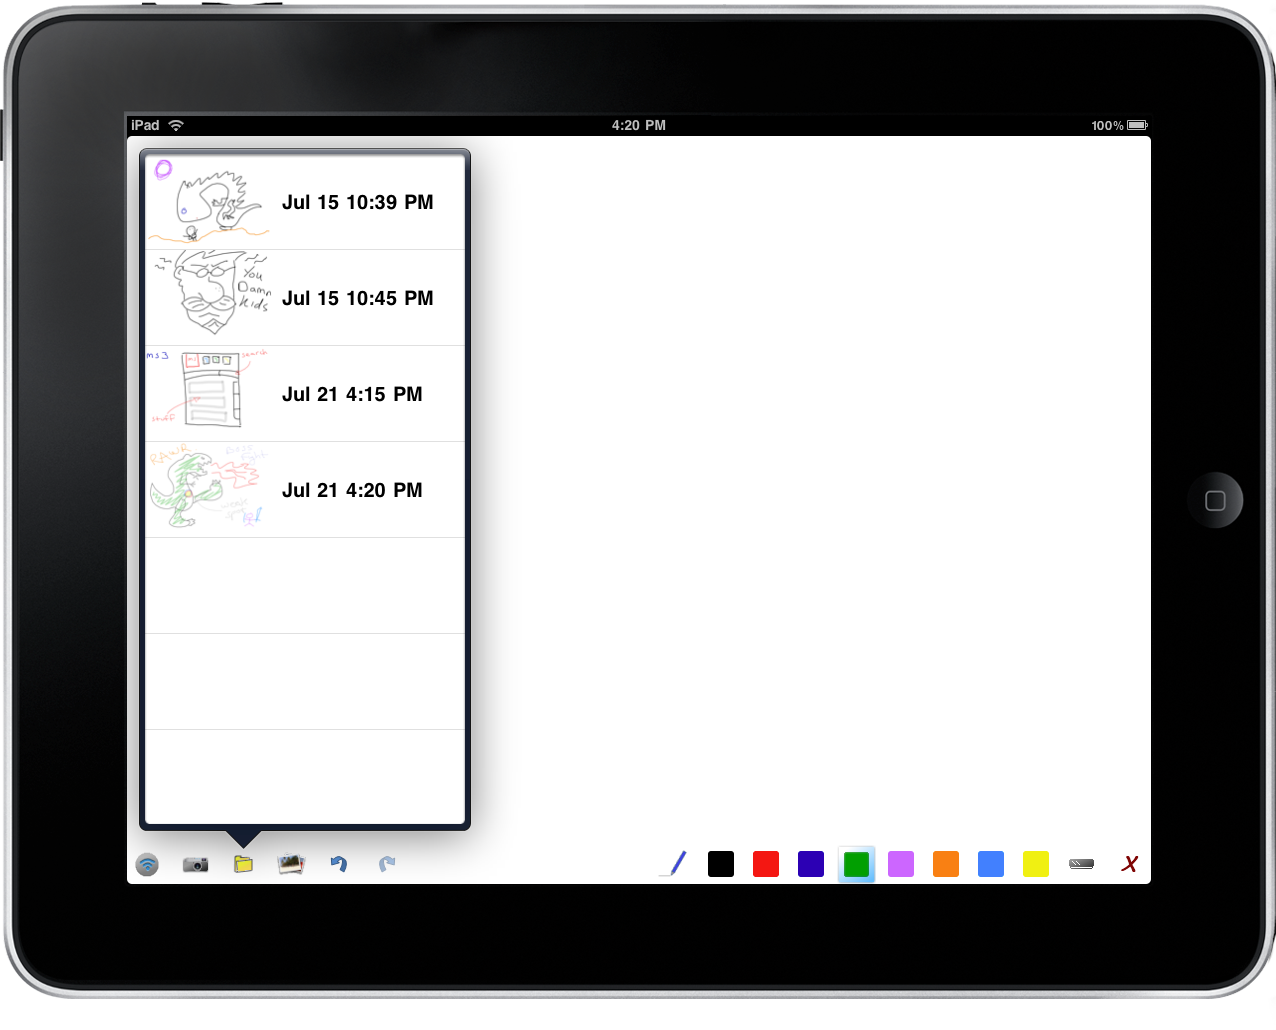 AirSketch Saved Images